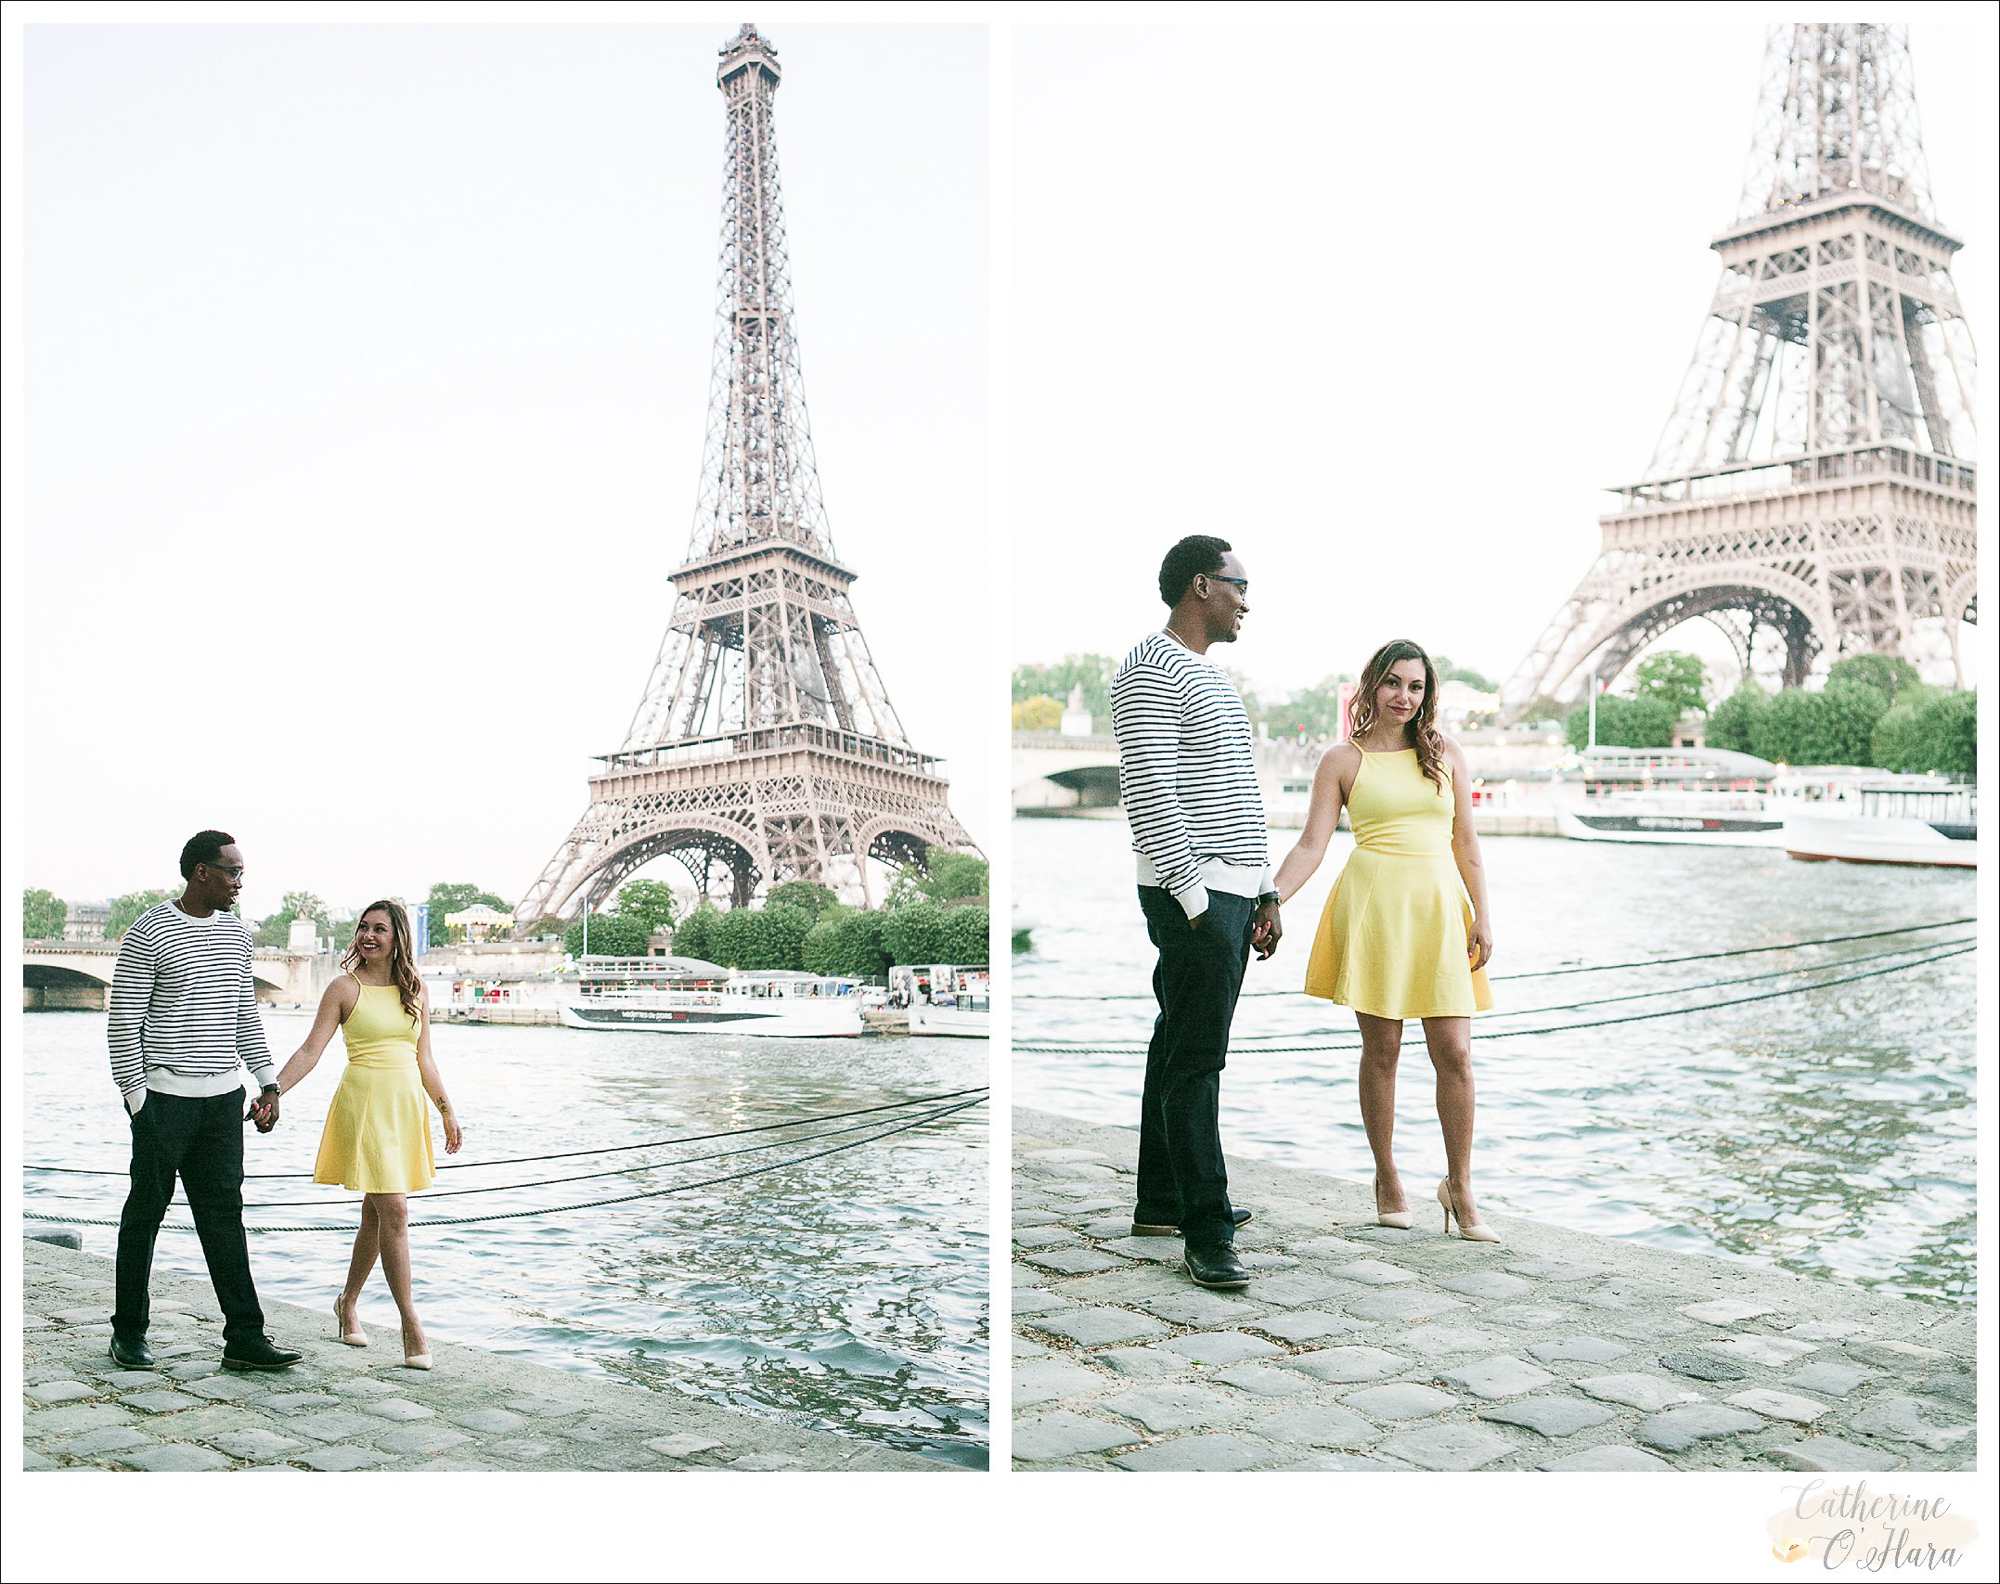 surprise proposal engagement photographer paris france-31.jpg